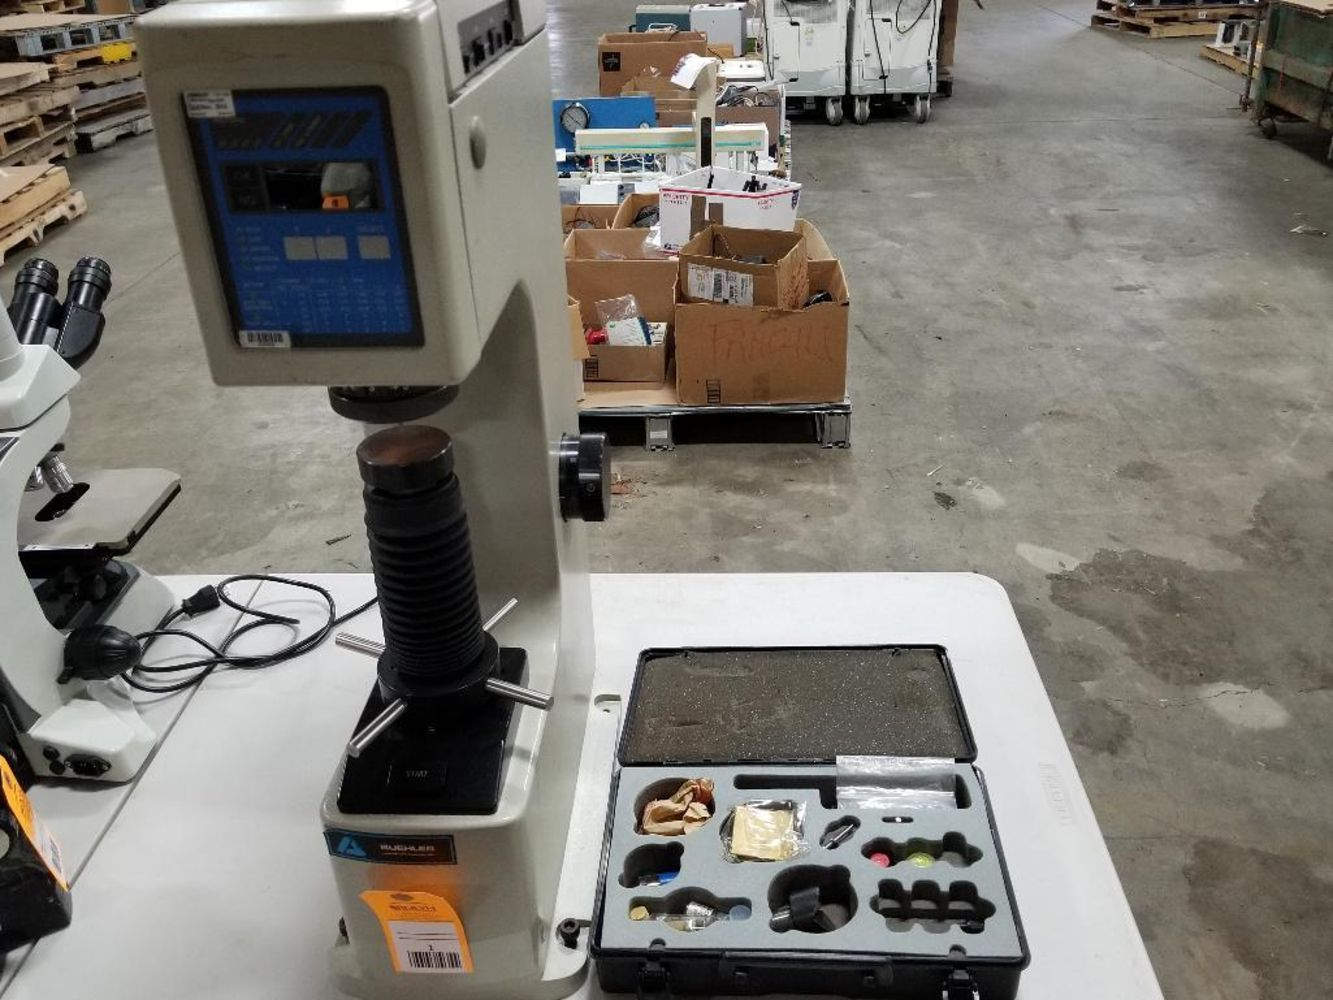 3/26 Brolyn Auctions Support Equipment and Machinery Collective